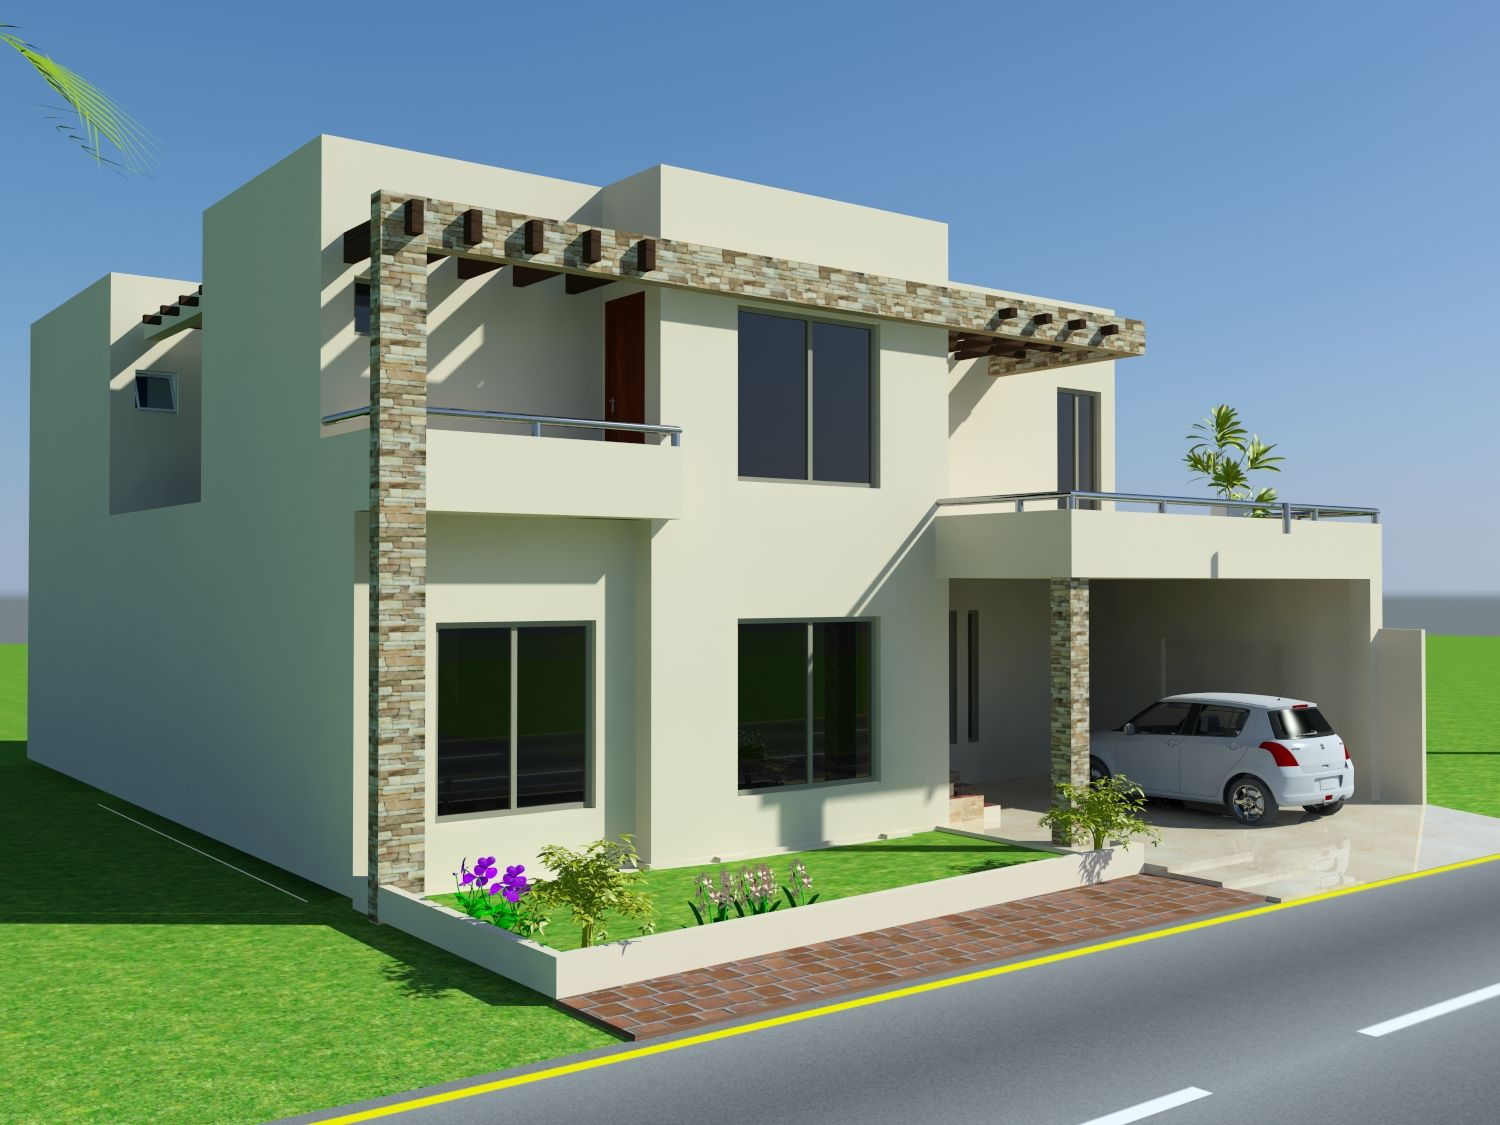 10 Marla House Design Mian Wali Pakistan